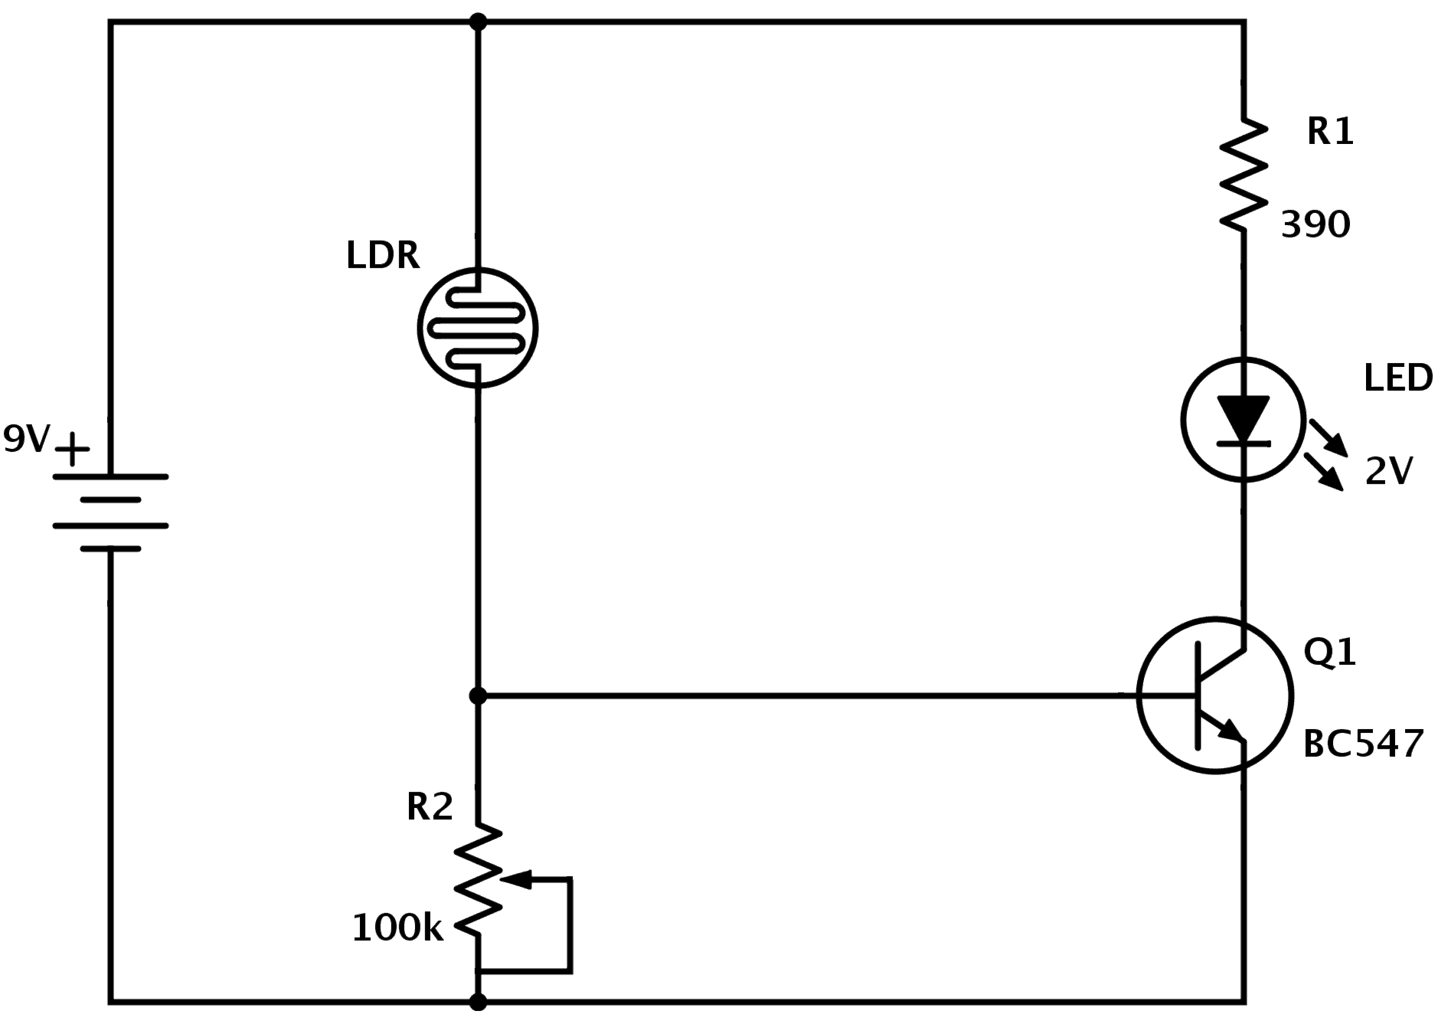 circuit diagram how to read and understand any schematic rh build electronic circuits com electronic circuit diagram symbols electronic circuit diagrams projects